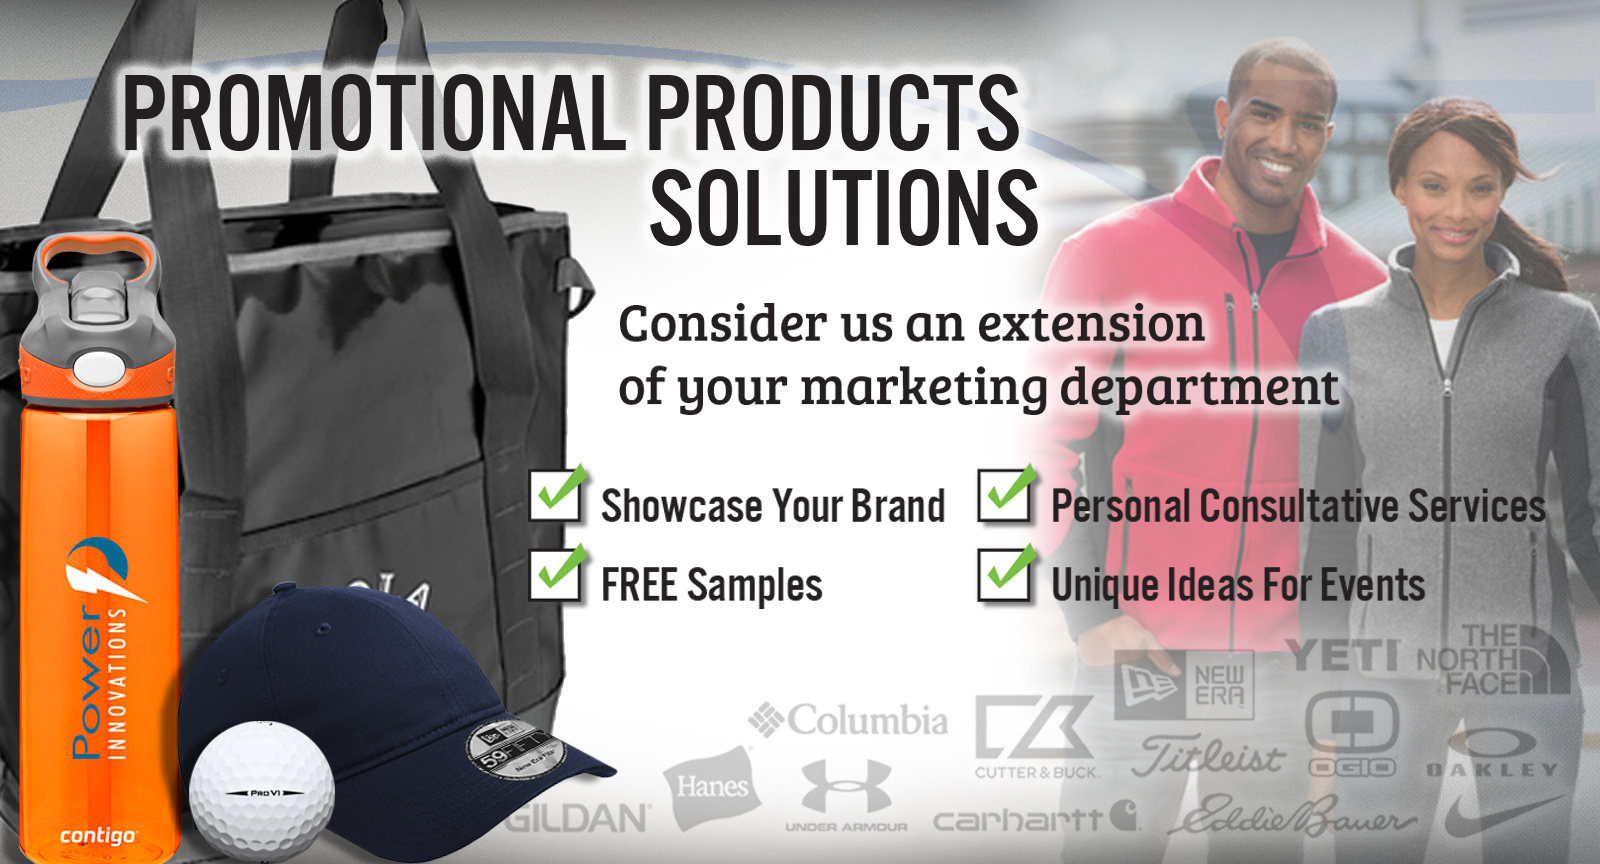 Promotional Products' Solutions